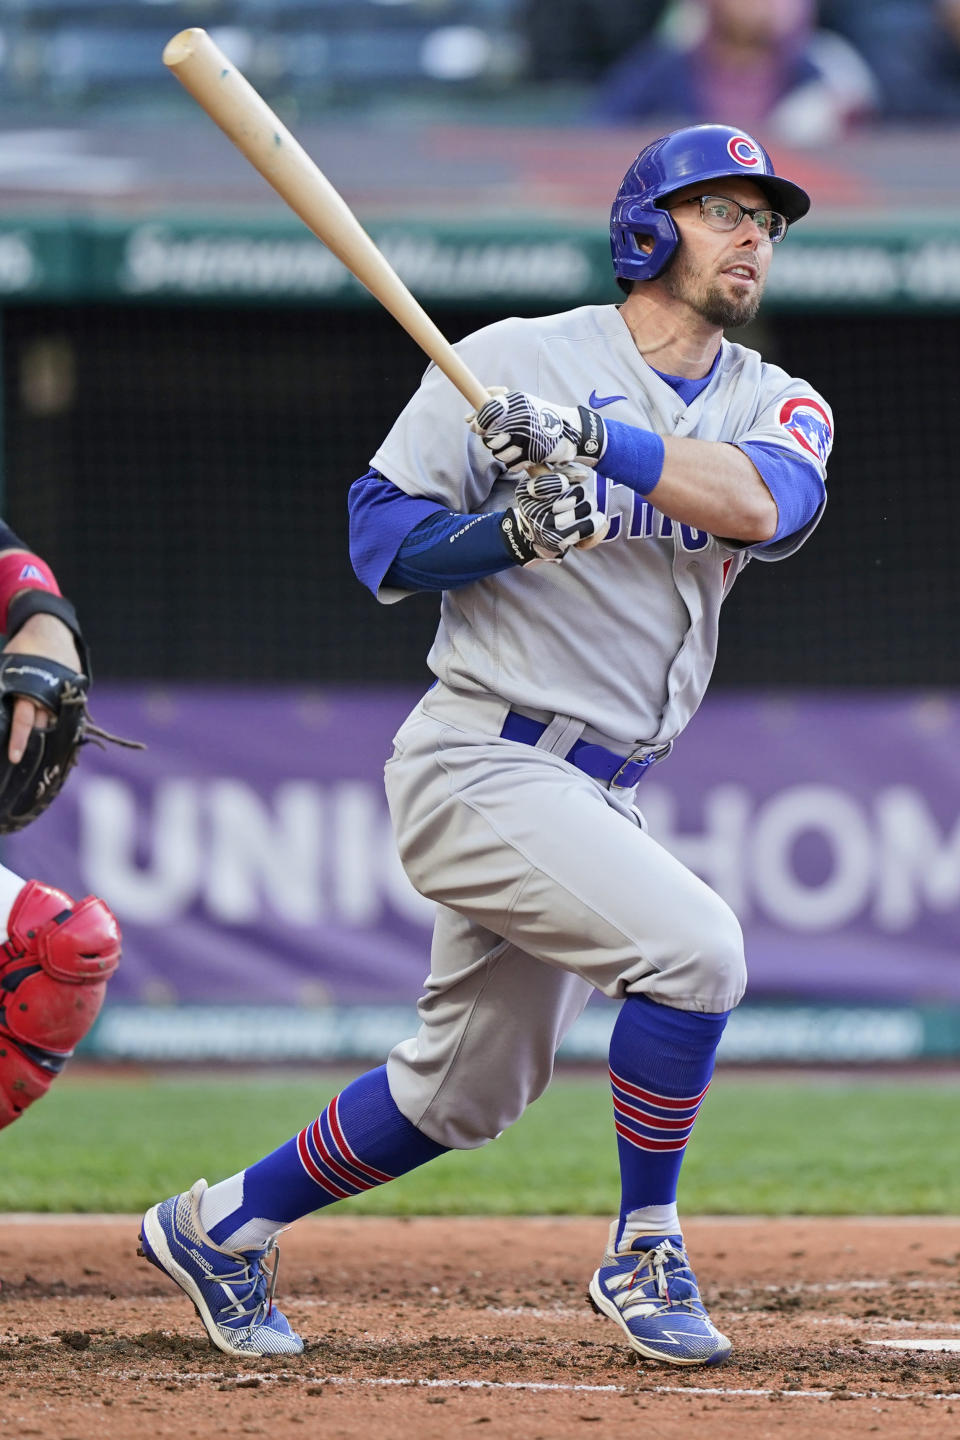 Chicago Cubs' Eric Sogard watches his ball after hitting a solo home run in the fifth inning of a baseball game against the Cleveland Indians, Tuesday, May 11, 2021, in Cleveland. (AP Photo/Tony Dejak)